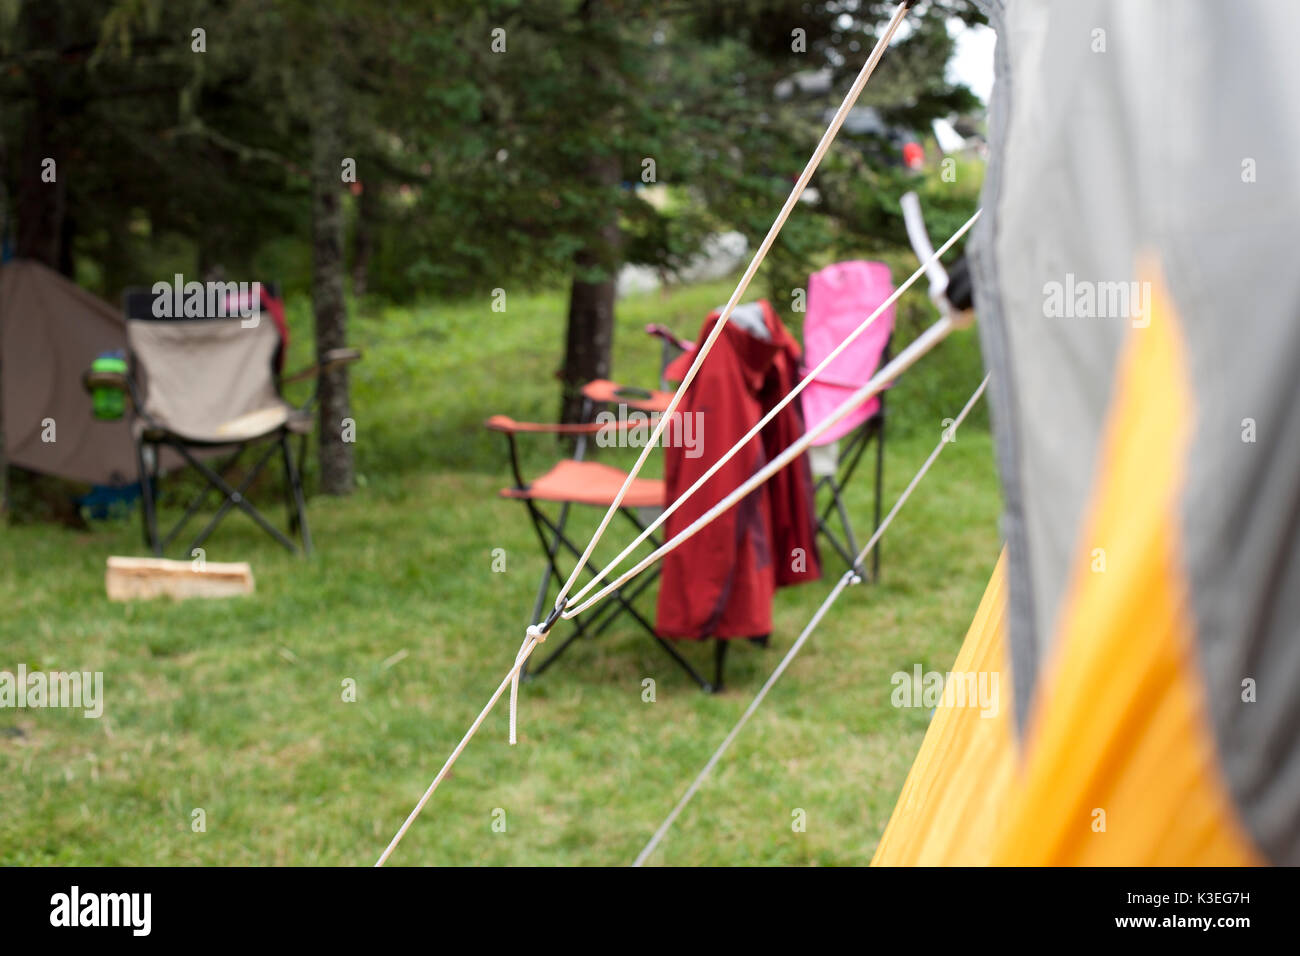 Close up of orange tent fabric or flap with forest behind - Stock Image & Open Tent Flap Stock Photos u0026 Open Tent Flap Stock Images - Alamy